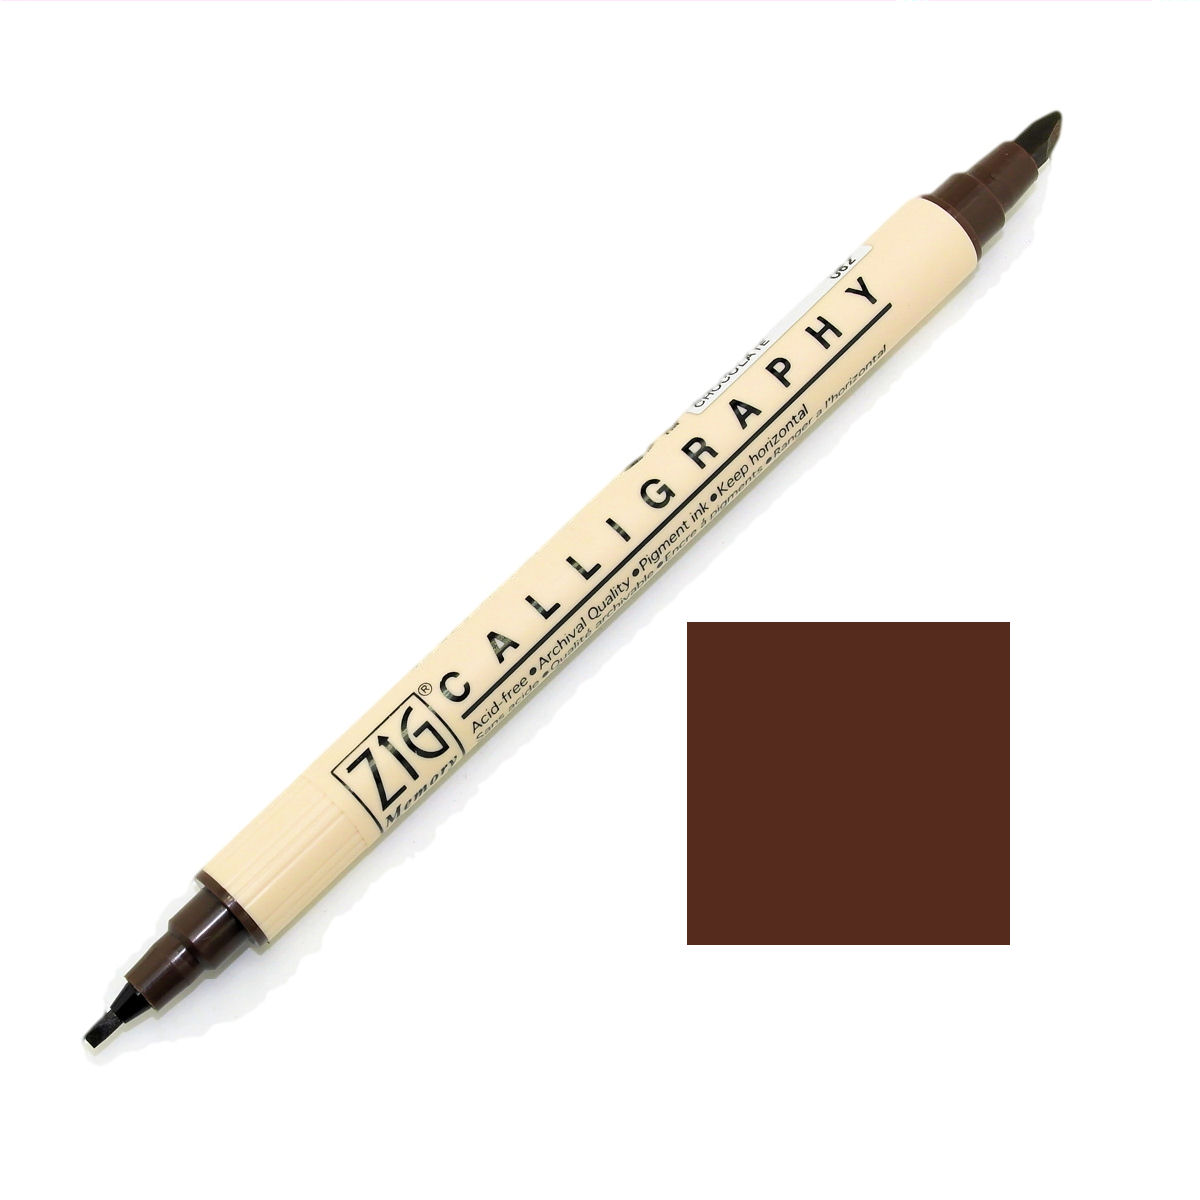 Zig Memory System Calligraphy Marker Pen Browns Ebay